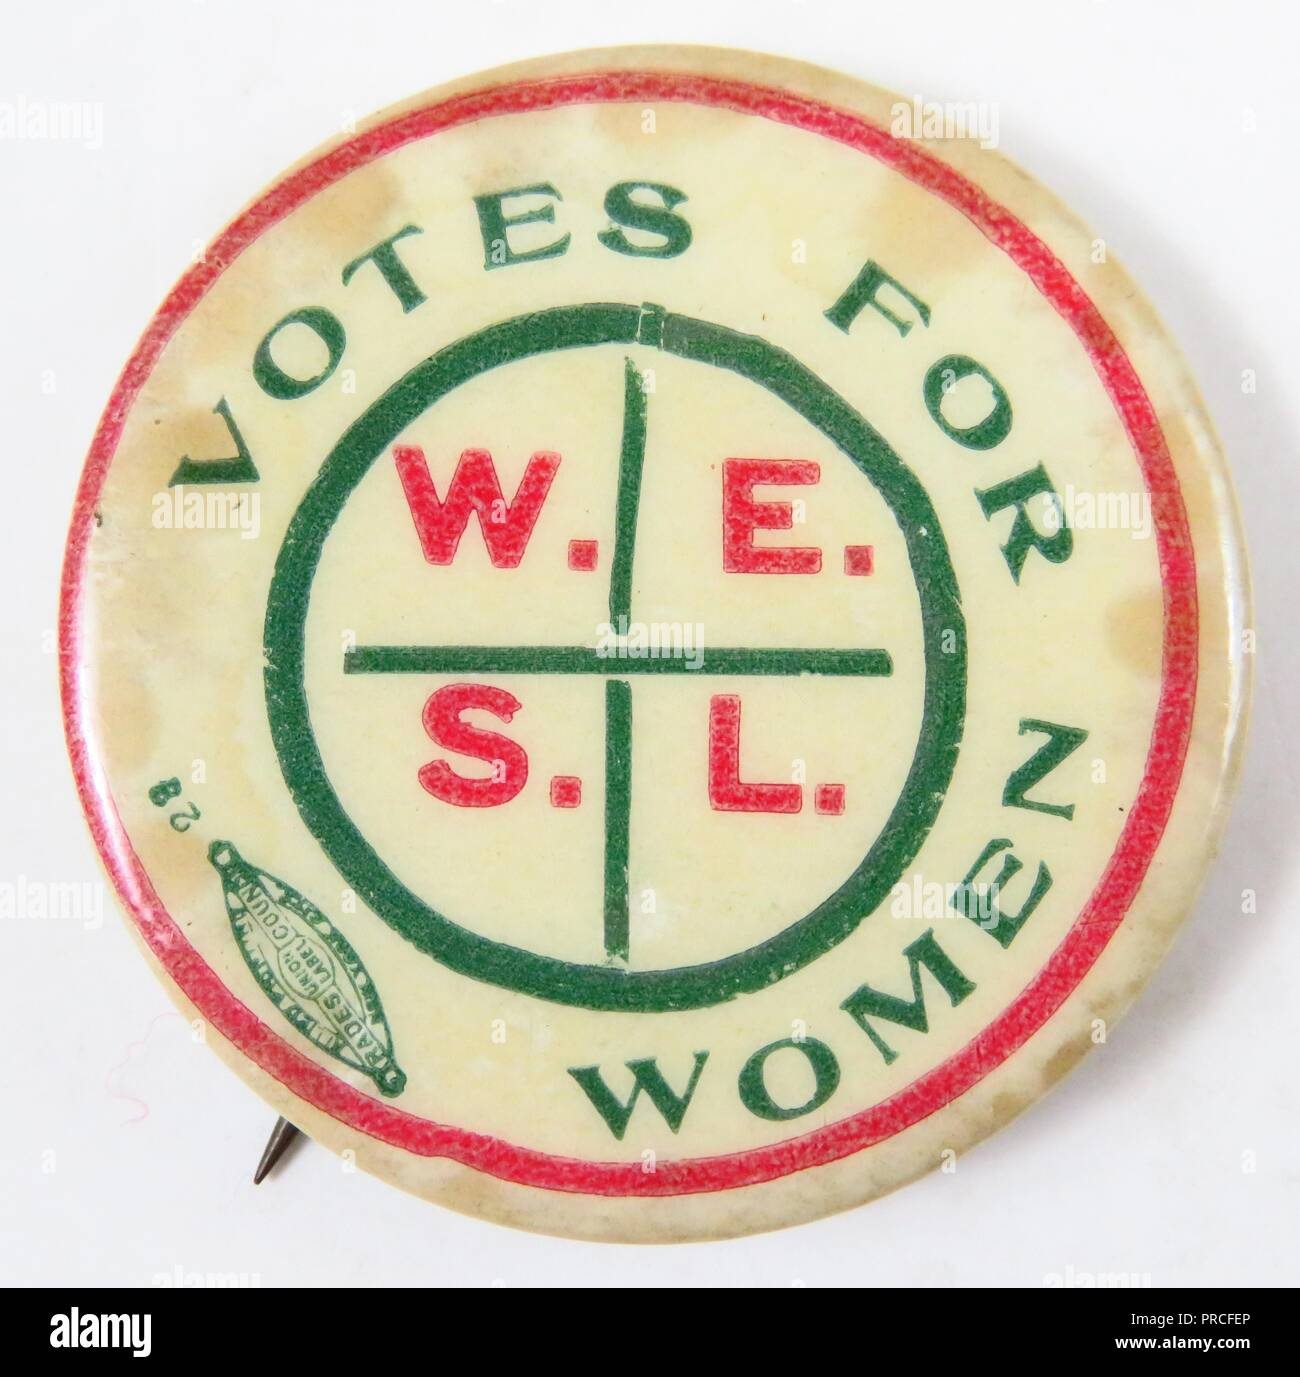 Red, white, and green suffrage pin, with the text 'Votes For Women WESL, ' manufactured for the American market, by the Wage Earner's Suffrage League (WESL) an organization seeking to involve working women in the suffrage campaign, 1915. Photography by Emilia van Beugen. () - Stock Image